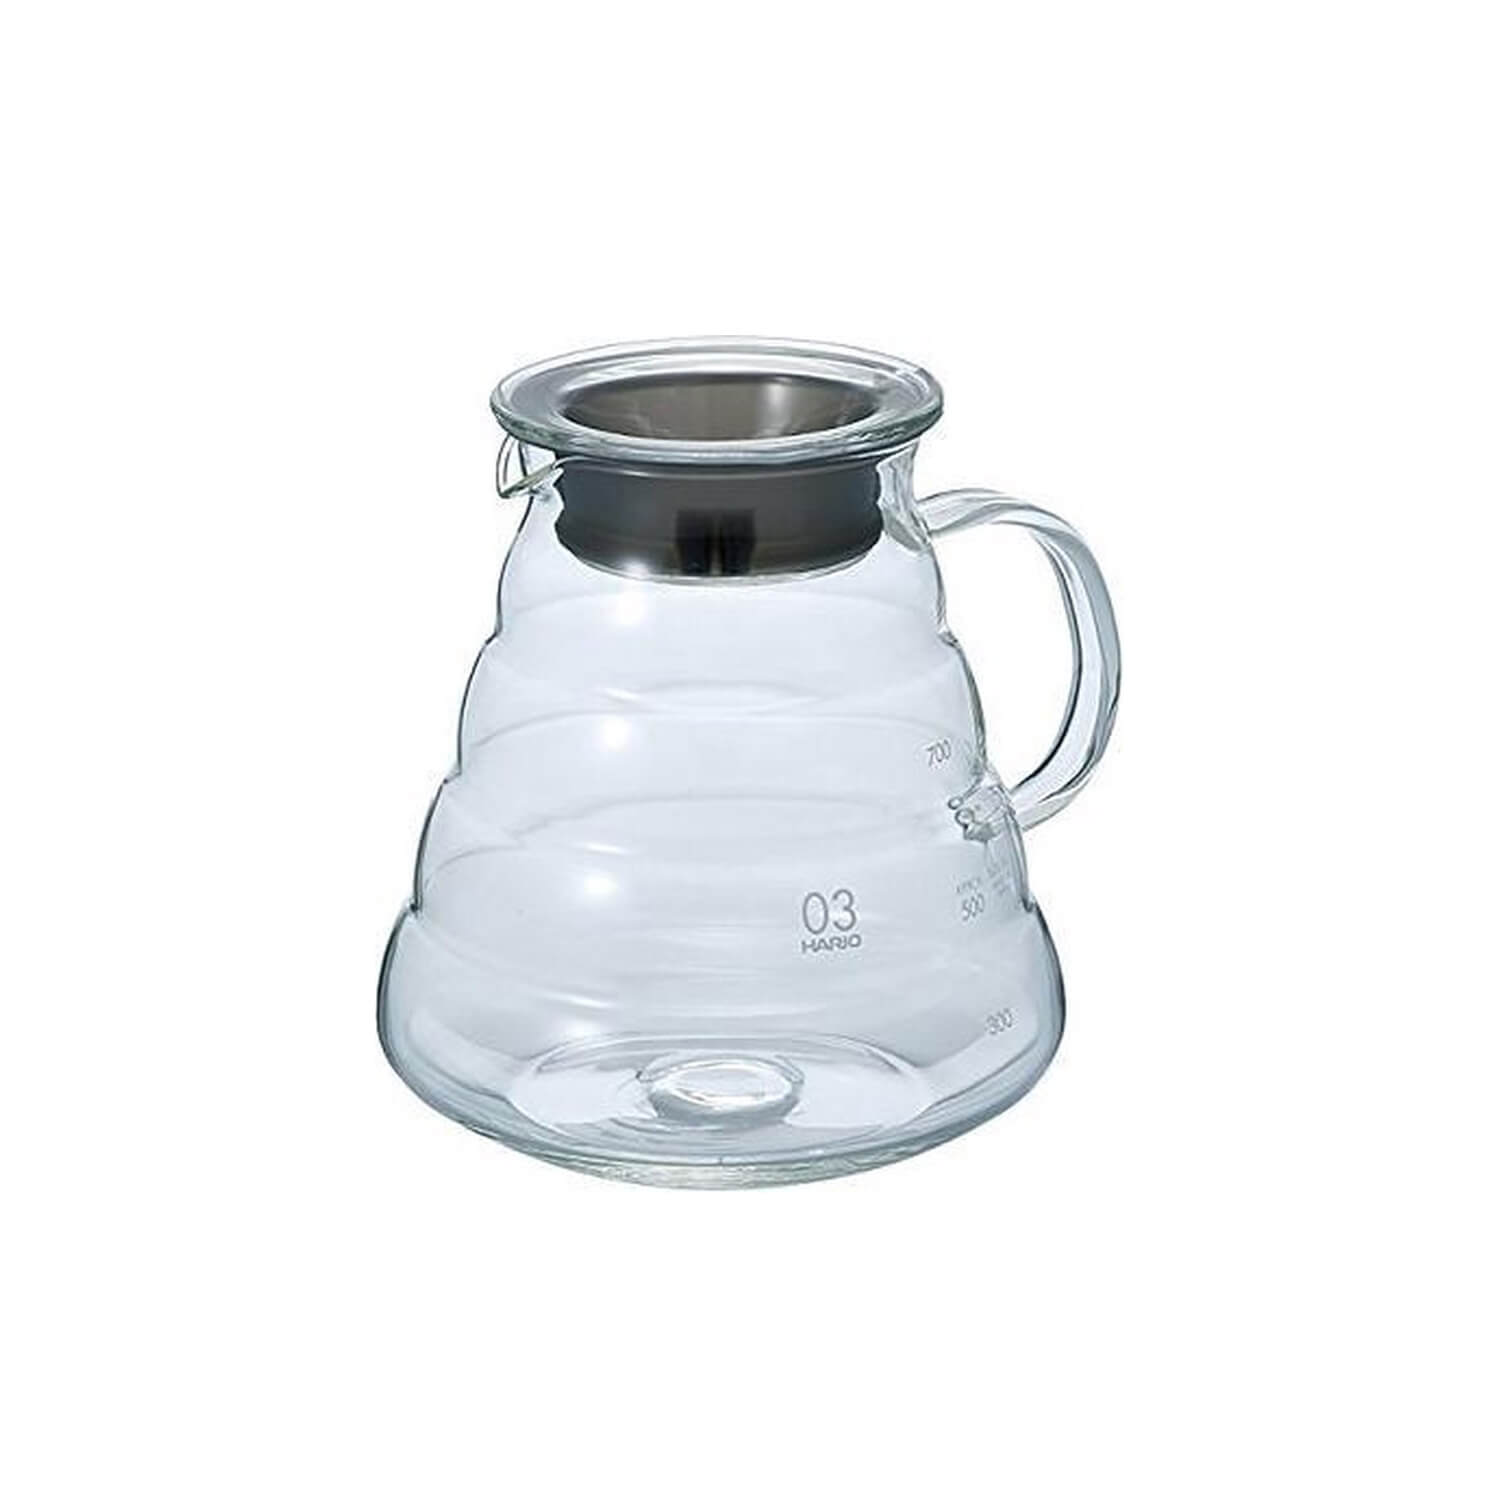 Hario - V60 Range Server - 03 - Clear - 800 ml